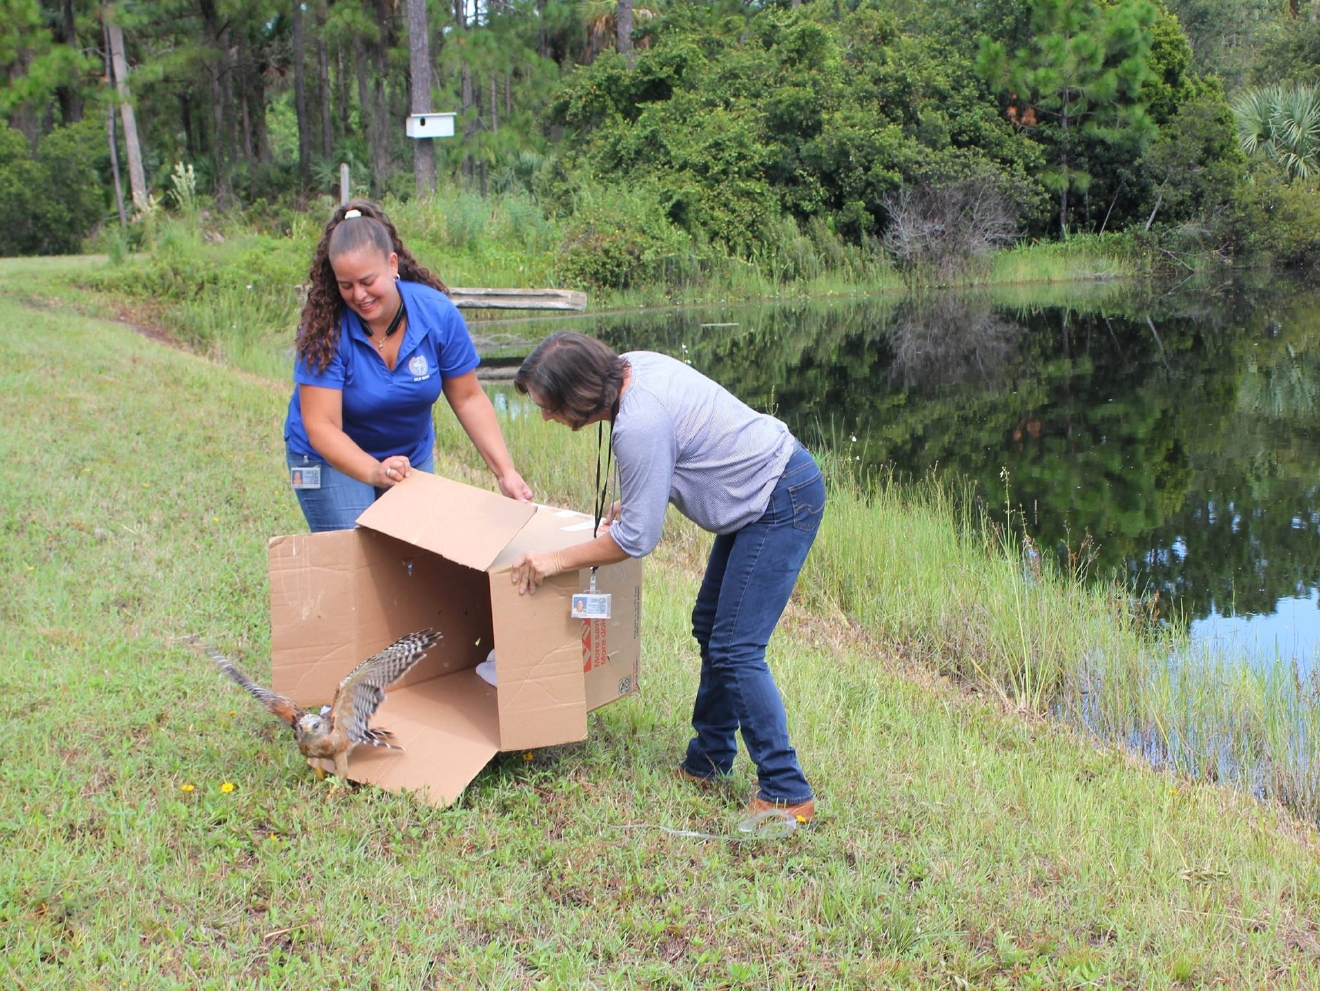 treasure coast wildlife center releases red shouldered hawk into another great release this time a recovered red shouldered hawk was released at the martin